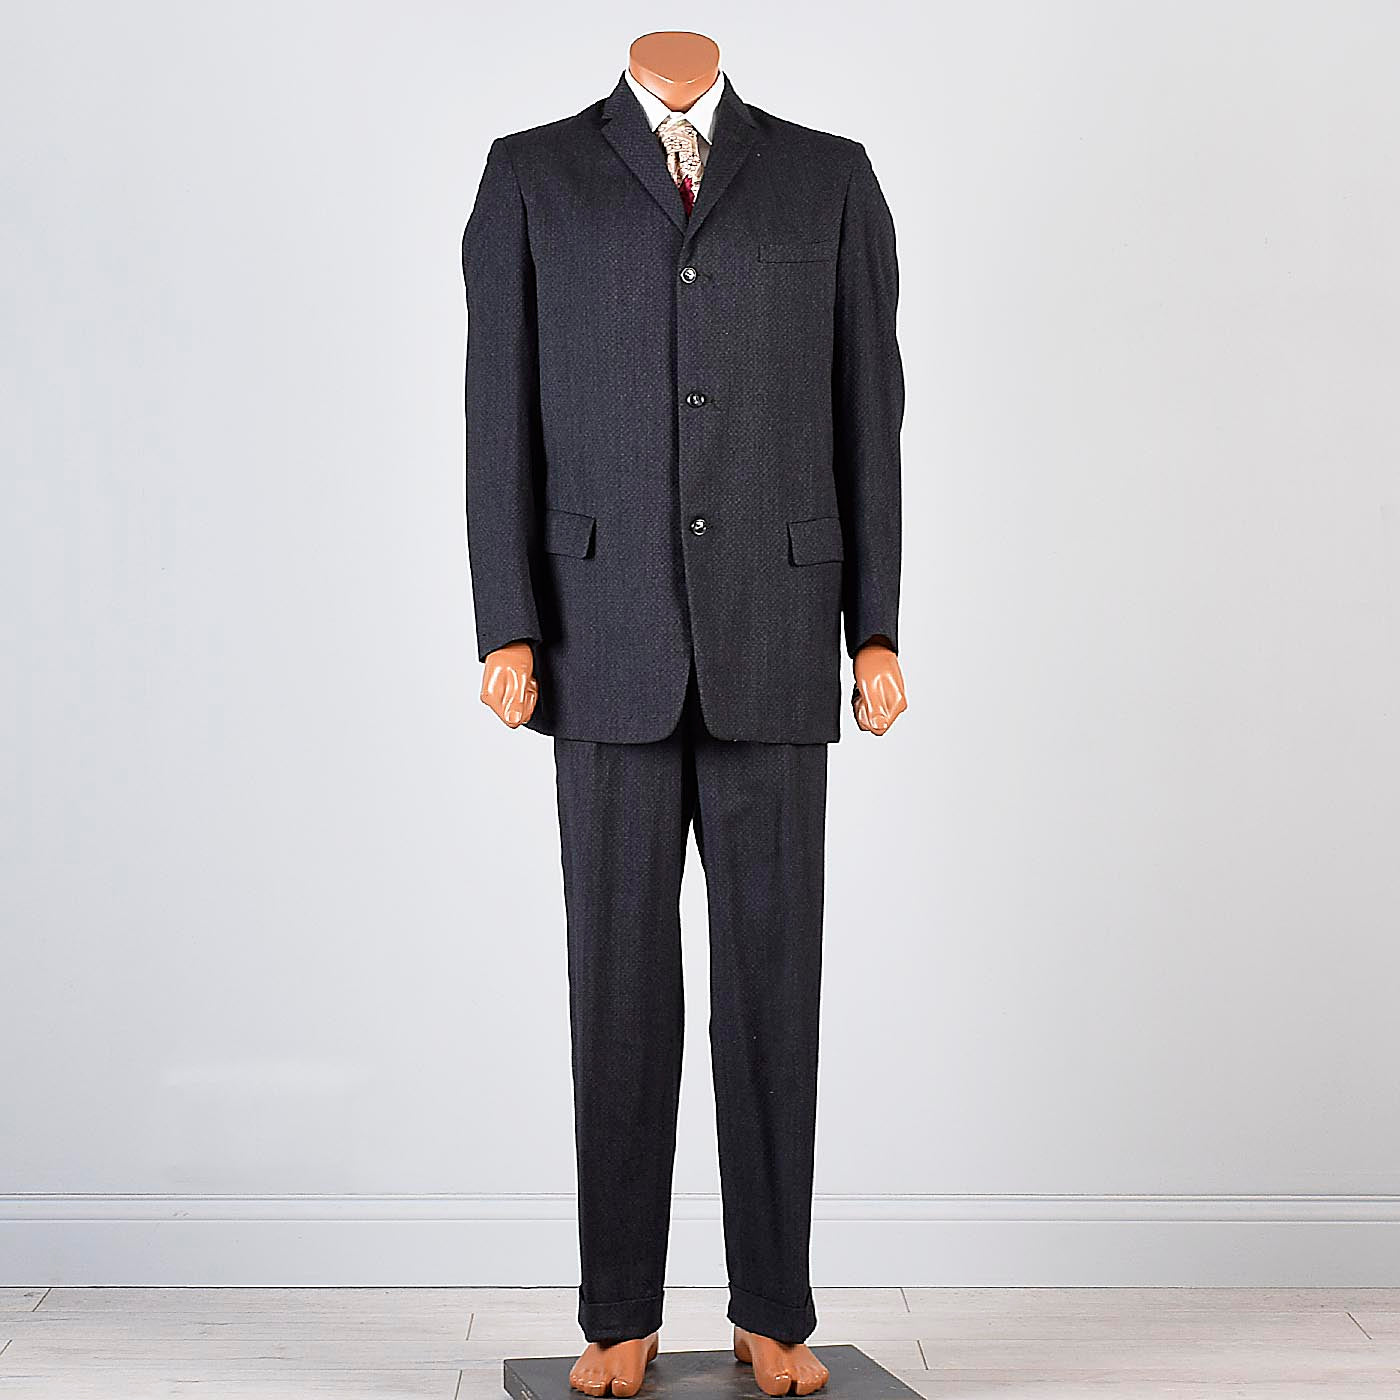 1950s Mens Two Piece Suit in Charcoal Gray